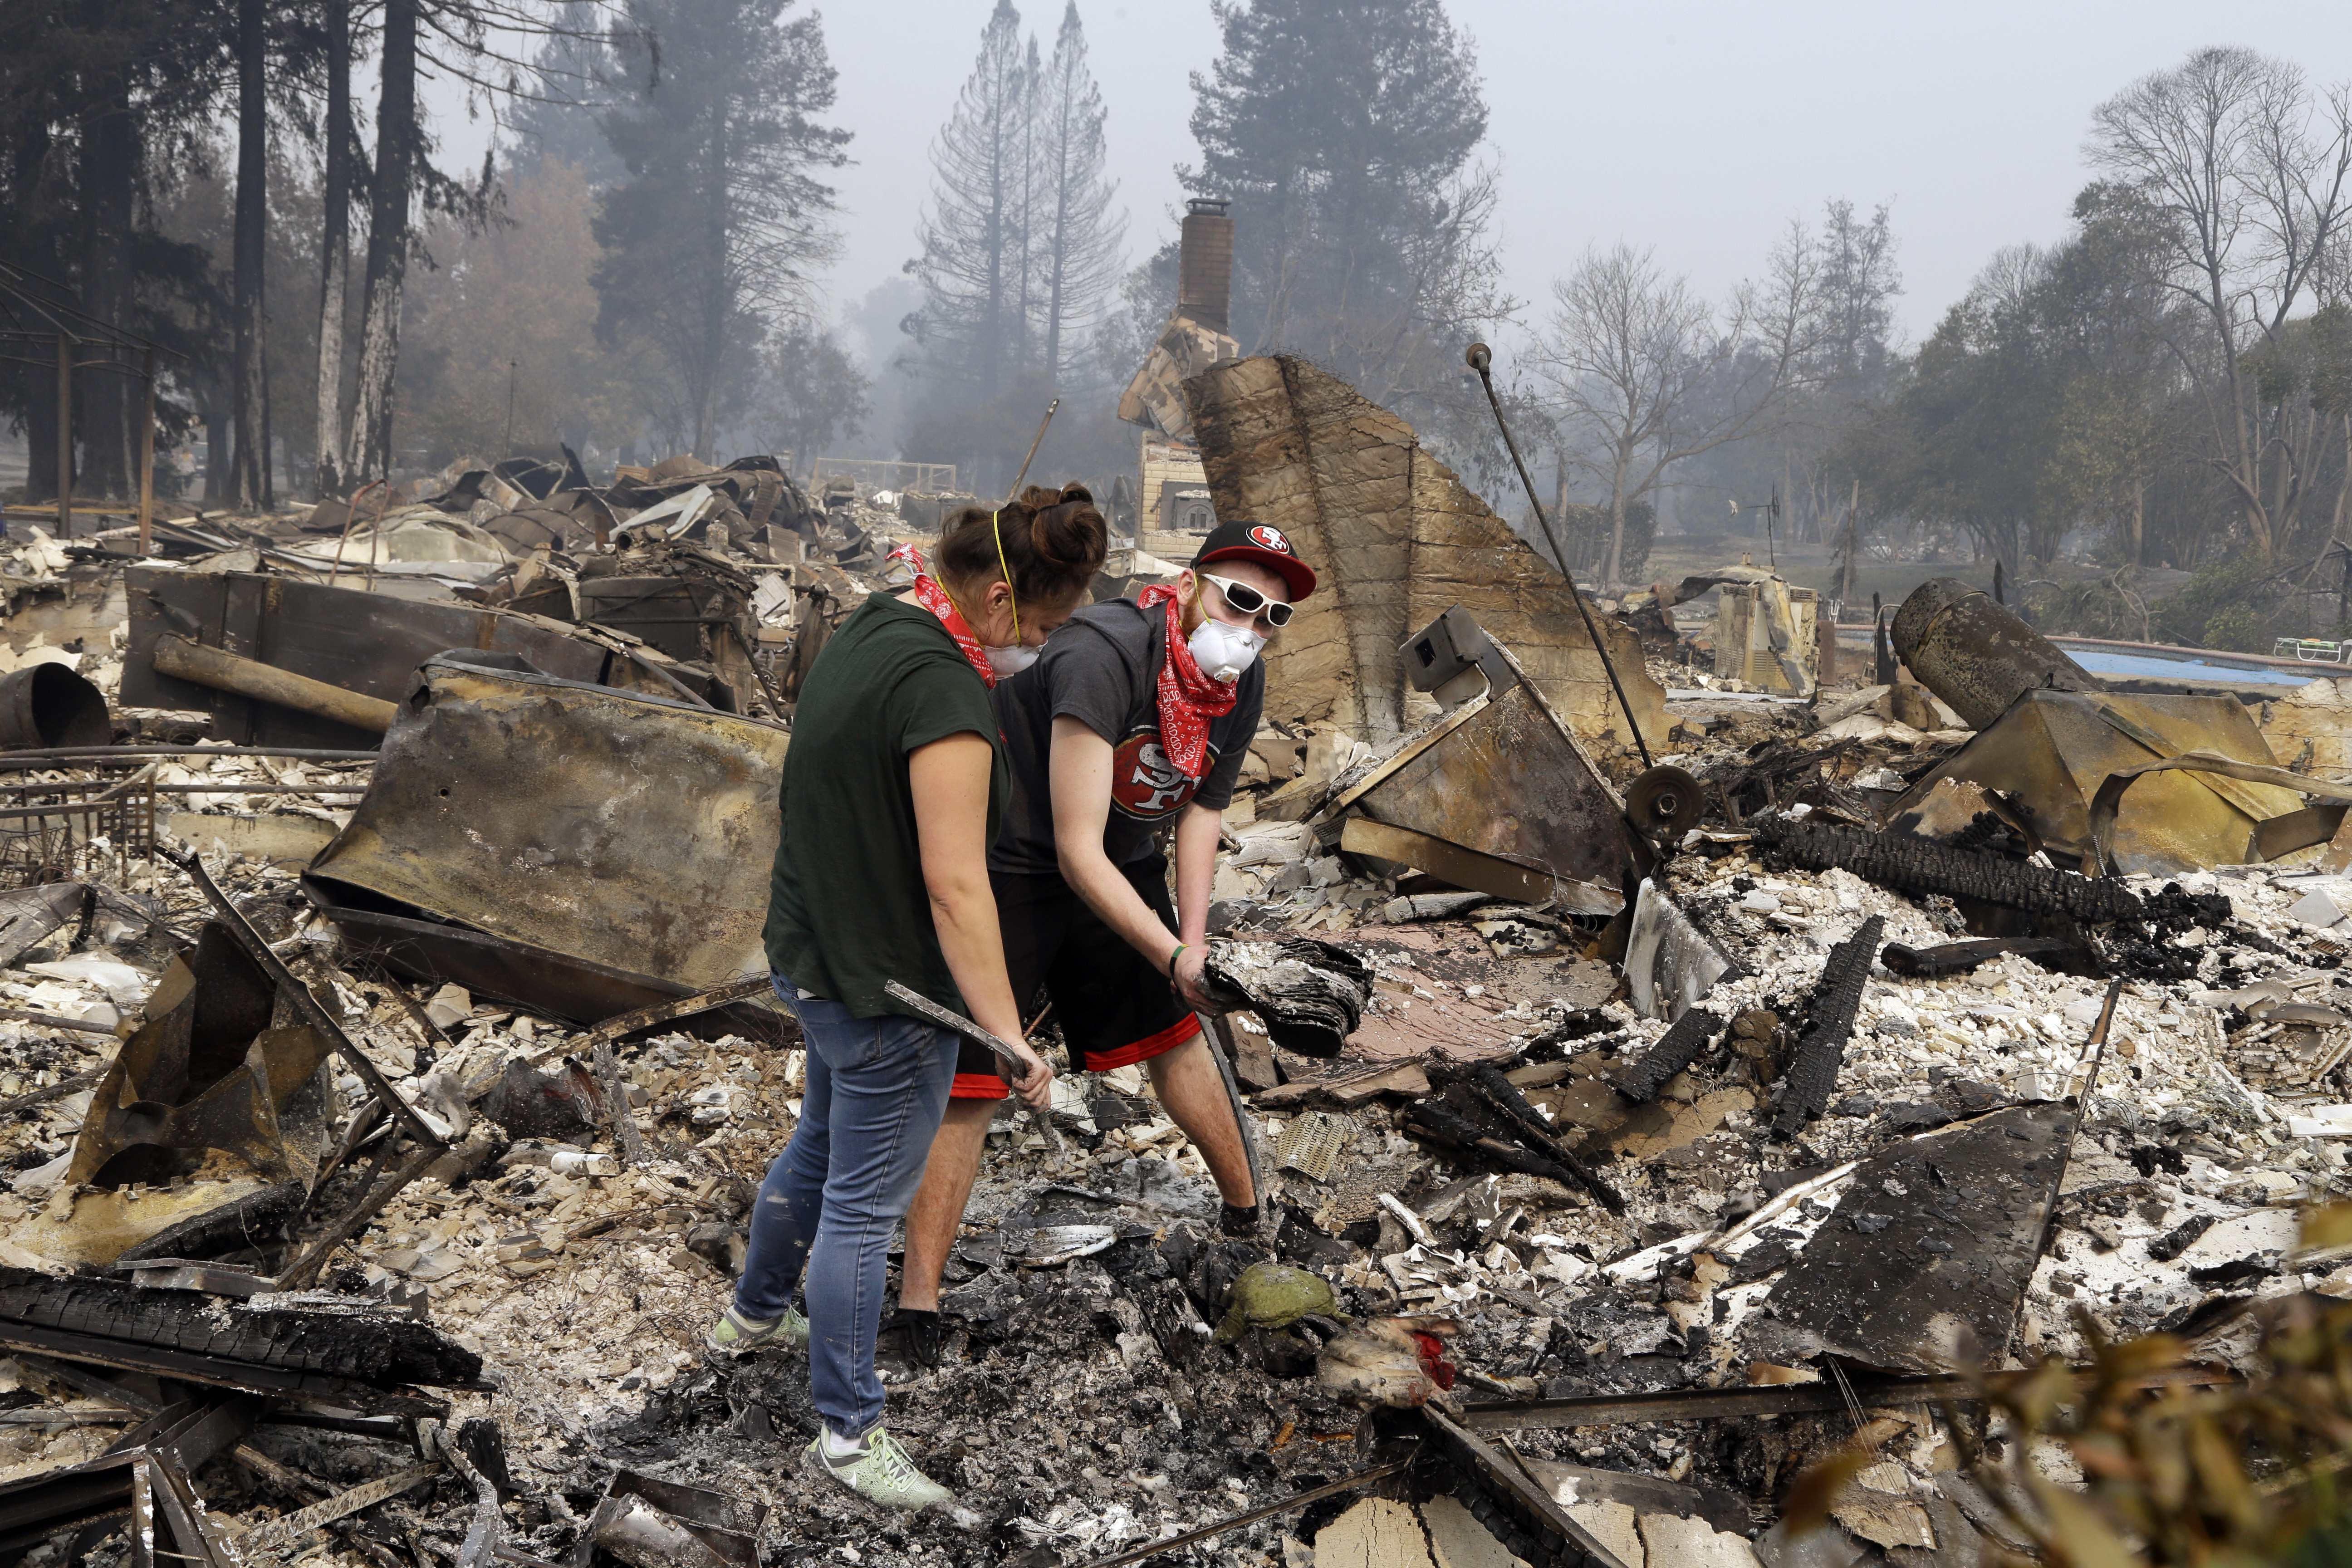 <div class='meta'><div class='origin-logo' data-origin='none'></div><span class='caption-text' data-credit='Ben Margot/AP Photo'>Robyn and Daniel Pellegrini search for belongings in the ashes of their home that was destroyed by fire in the Coffey Park area of Santa Rosa, Calif., on Tuesday, Oct. 10, 2017.</span></div>